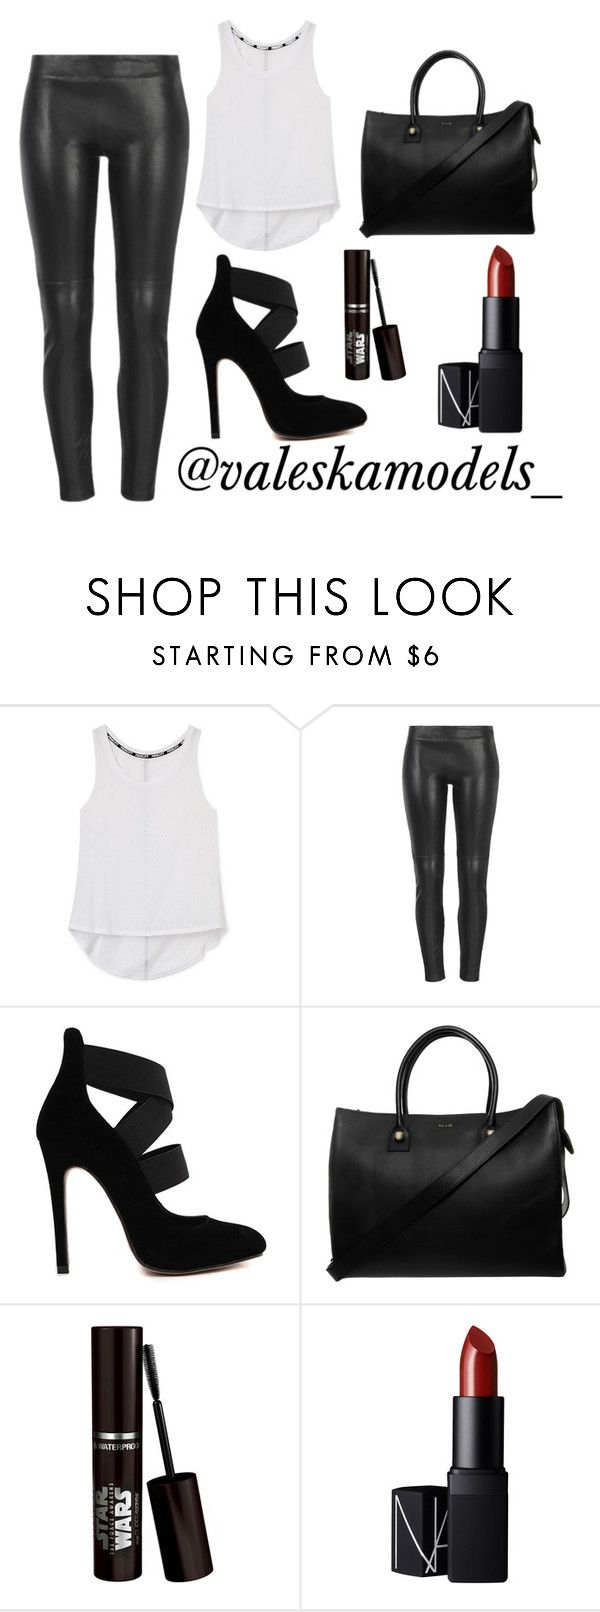 """Good For You"" by valeska-models on Polyvore featuring moda, Rebecca Minkoff, MuuBaa, Paul & Joe y NARS Cosmetics"